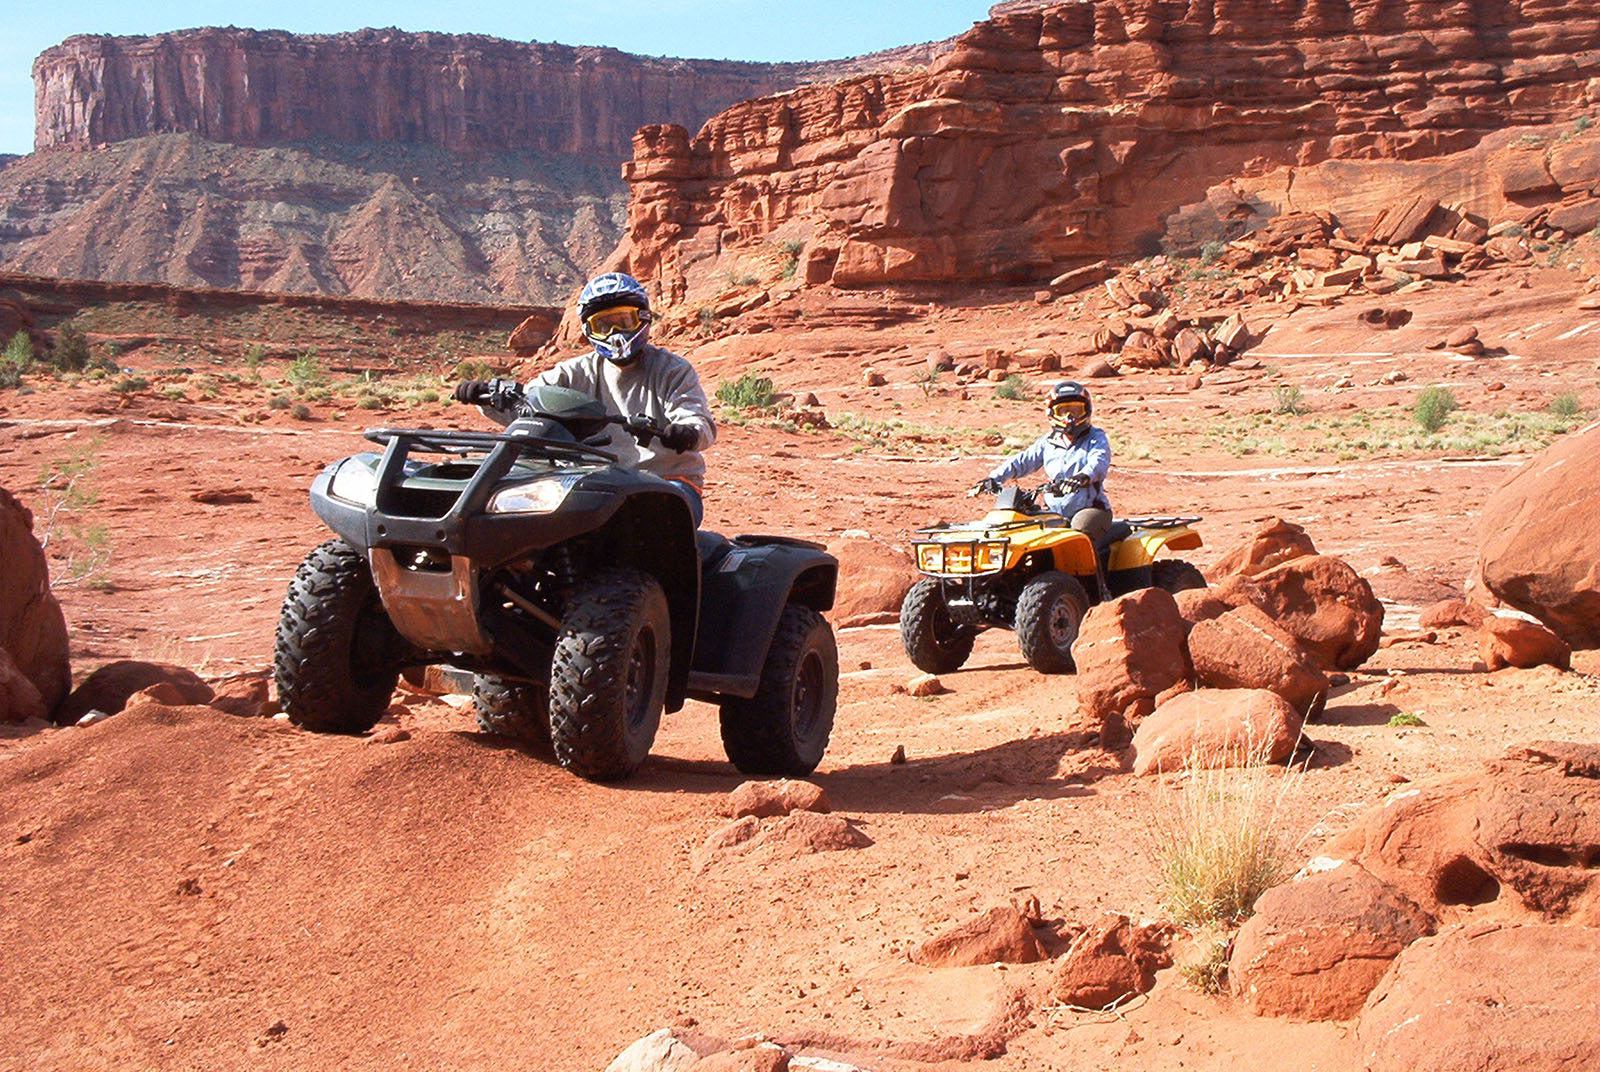 A pair of ATV riders follow a dirt trail through a rugged landscape.